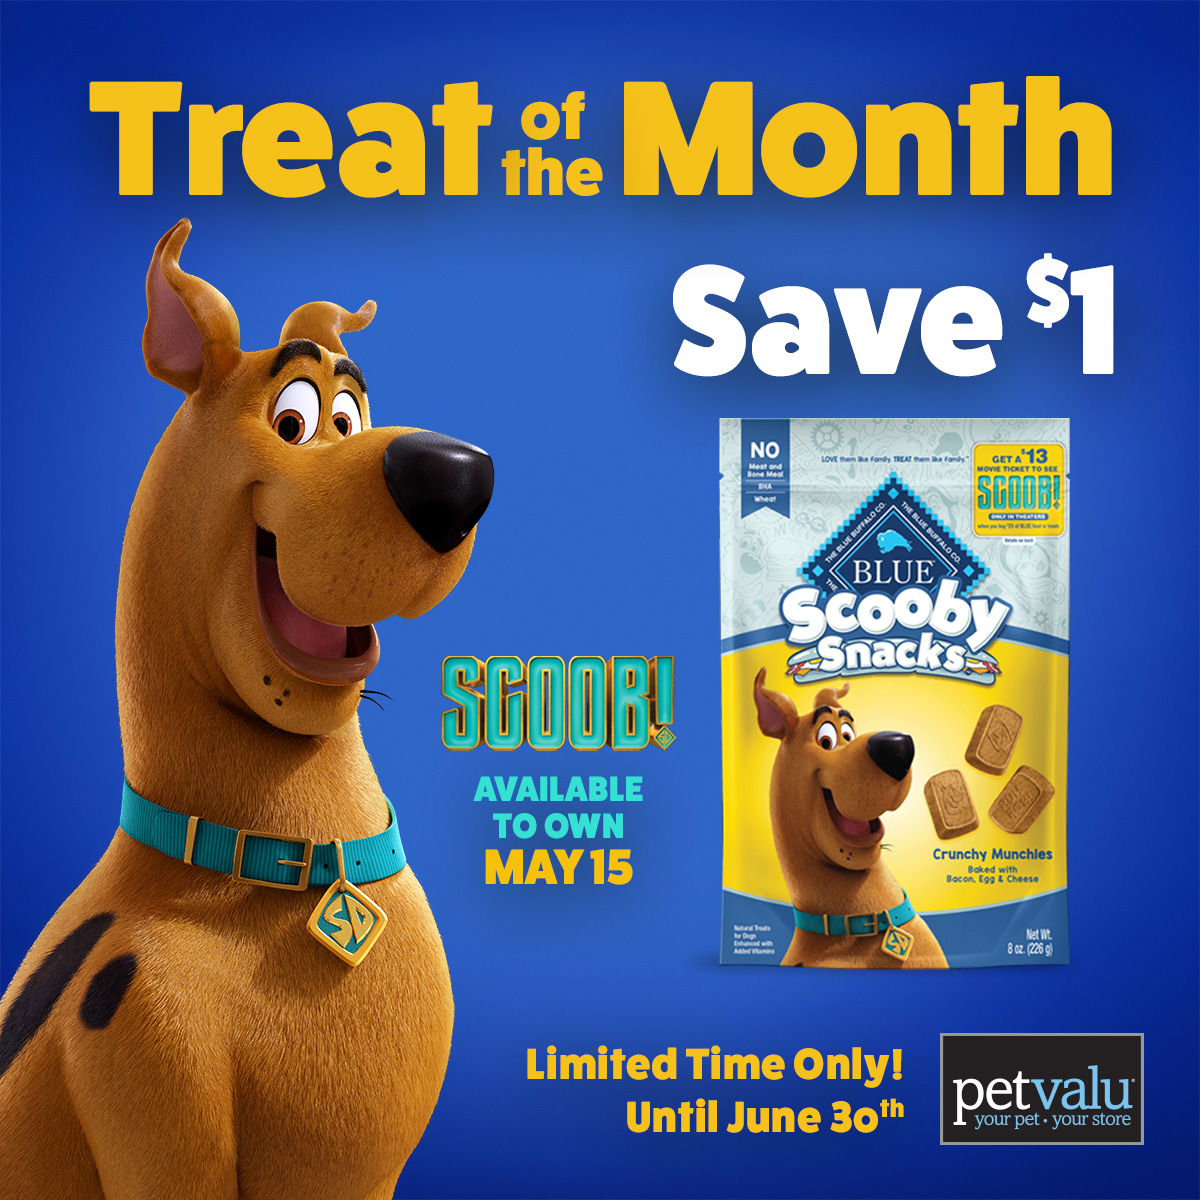 Did someone say Scooby Snacks? Check out the @petvalu Treat of the Month. #SCOOB is available to own tomorrow! https://t.co/OFxenIg0rZ